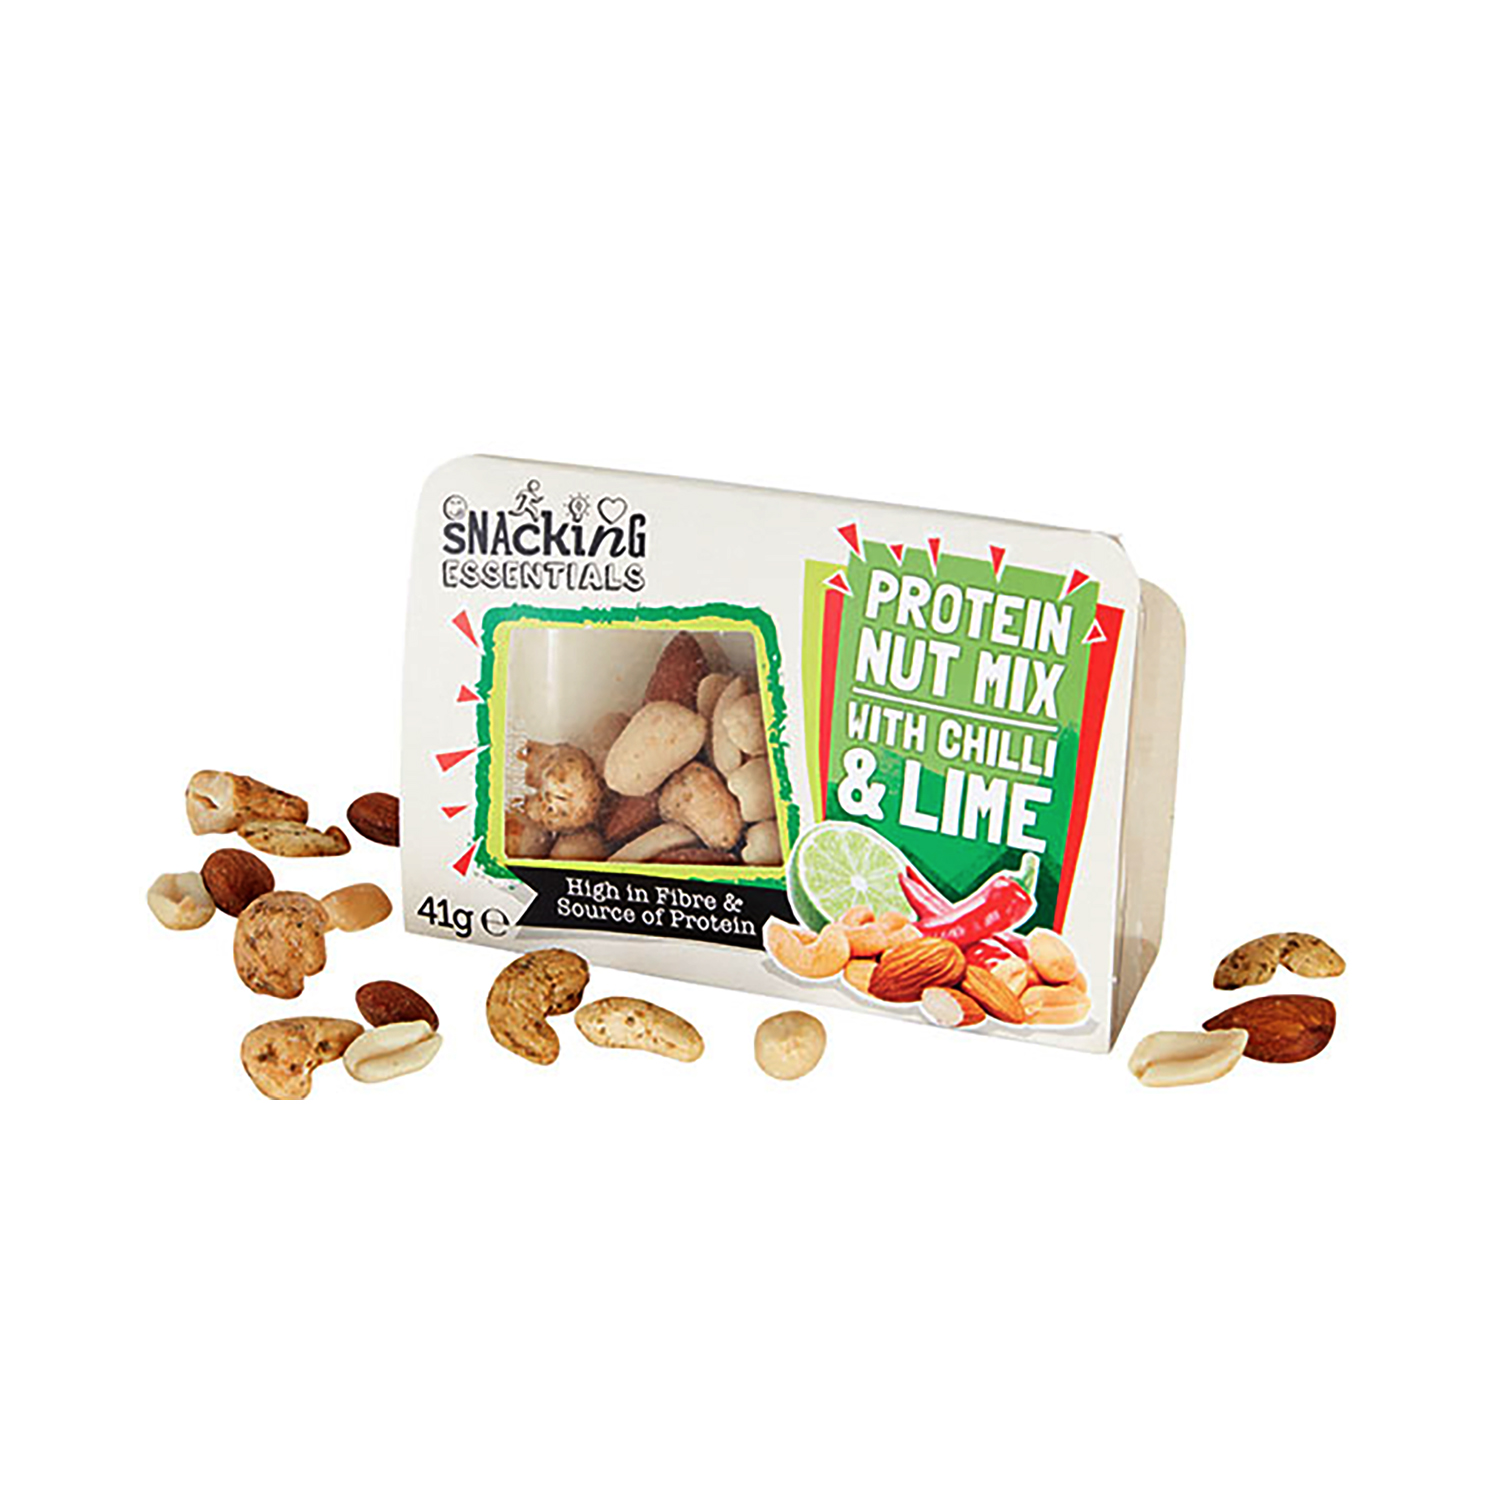 Breakfast / Snacks Snacking Essentials Nut Mix Chilli & Lime Snack Pot 41g Ref 512541 [Pack 9]